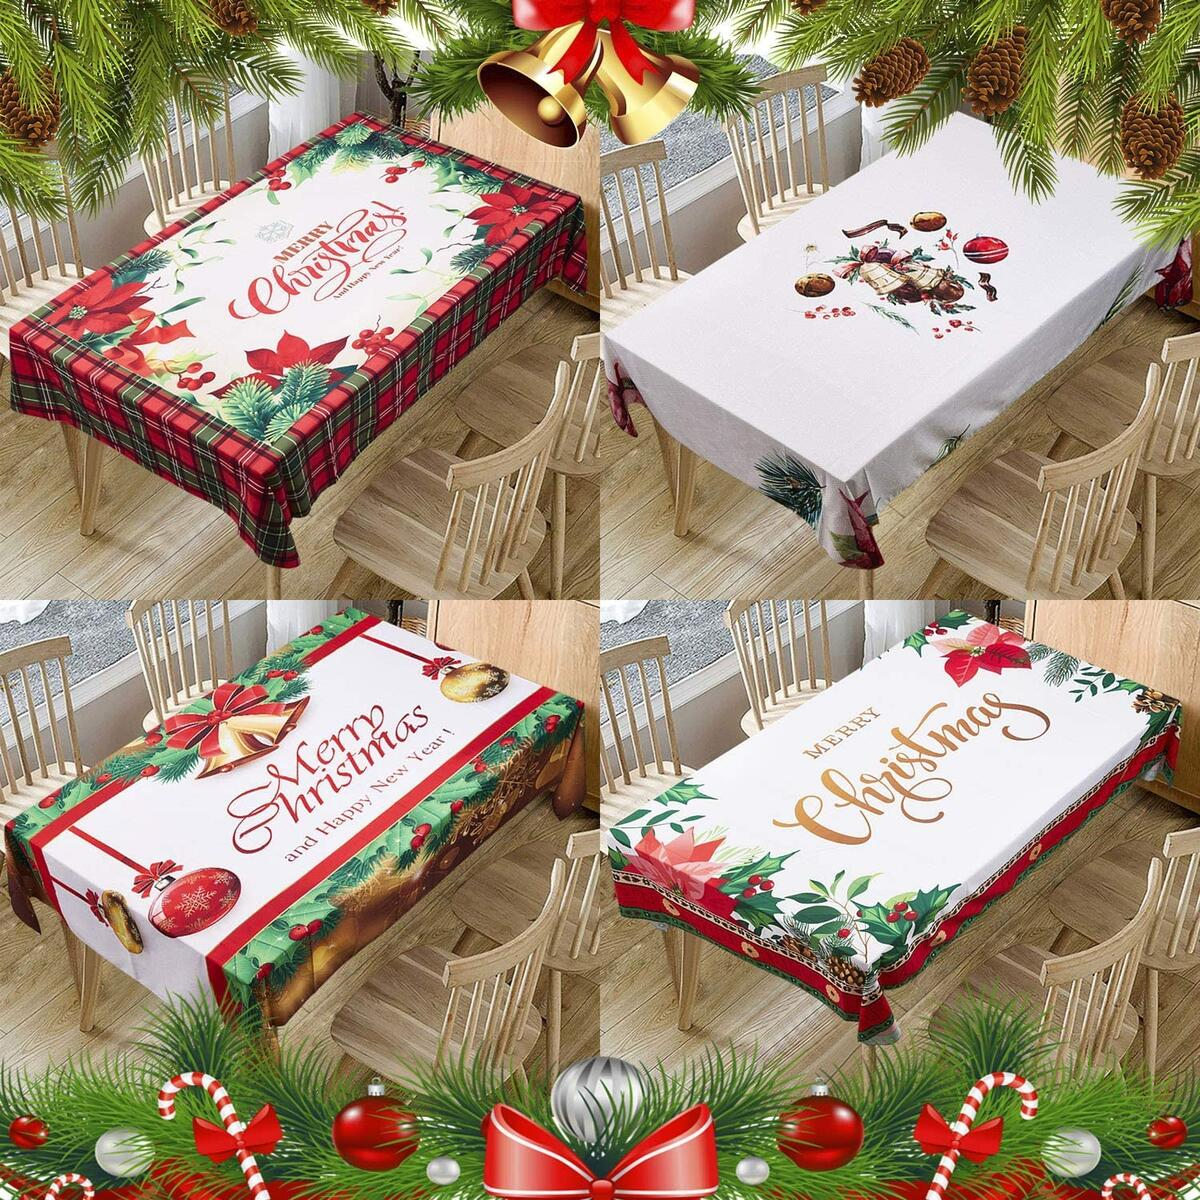 Christmas Printed Fabric Tablecloth,Oil-Proof and Waterproof Rectangle Table Cloth, Durable and Decorative Table Cover for Christmas and Thanksgiving